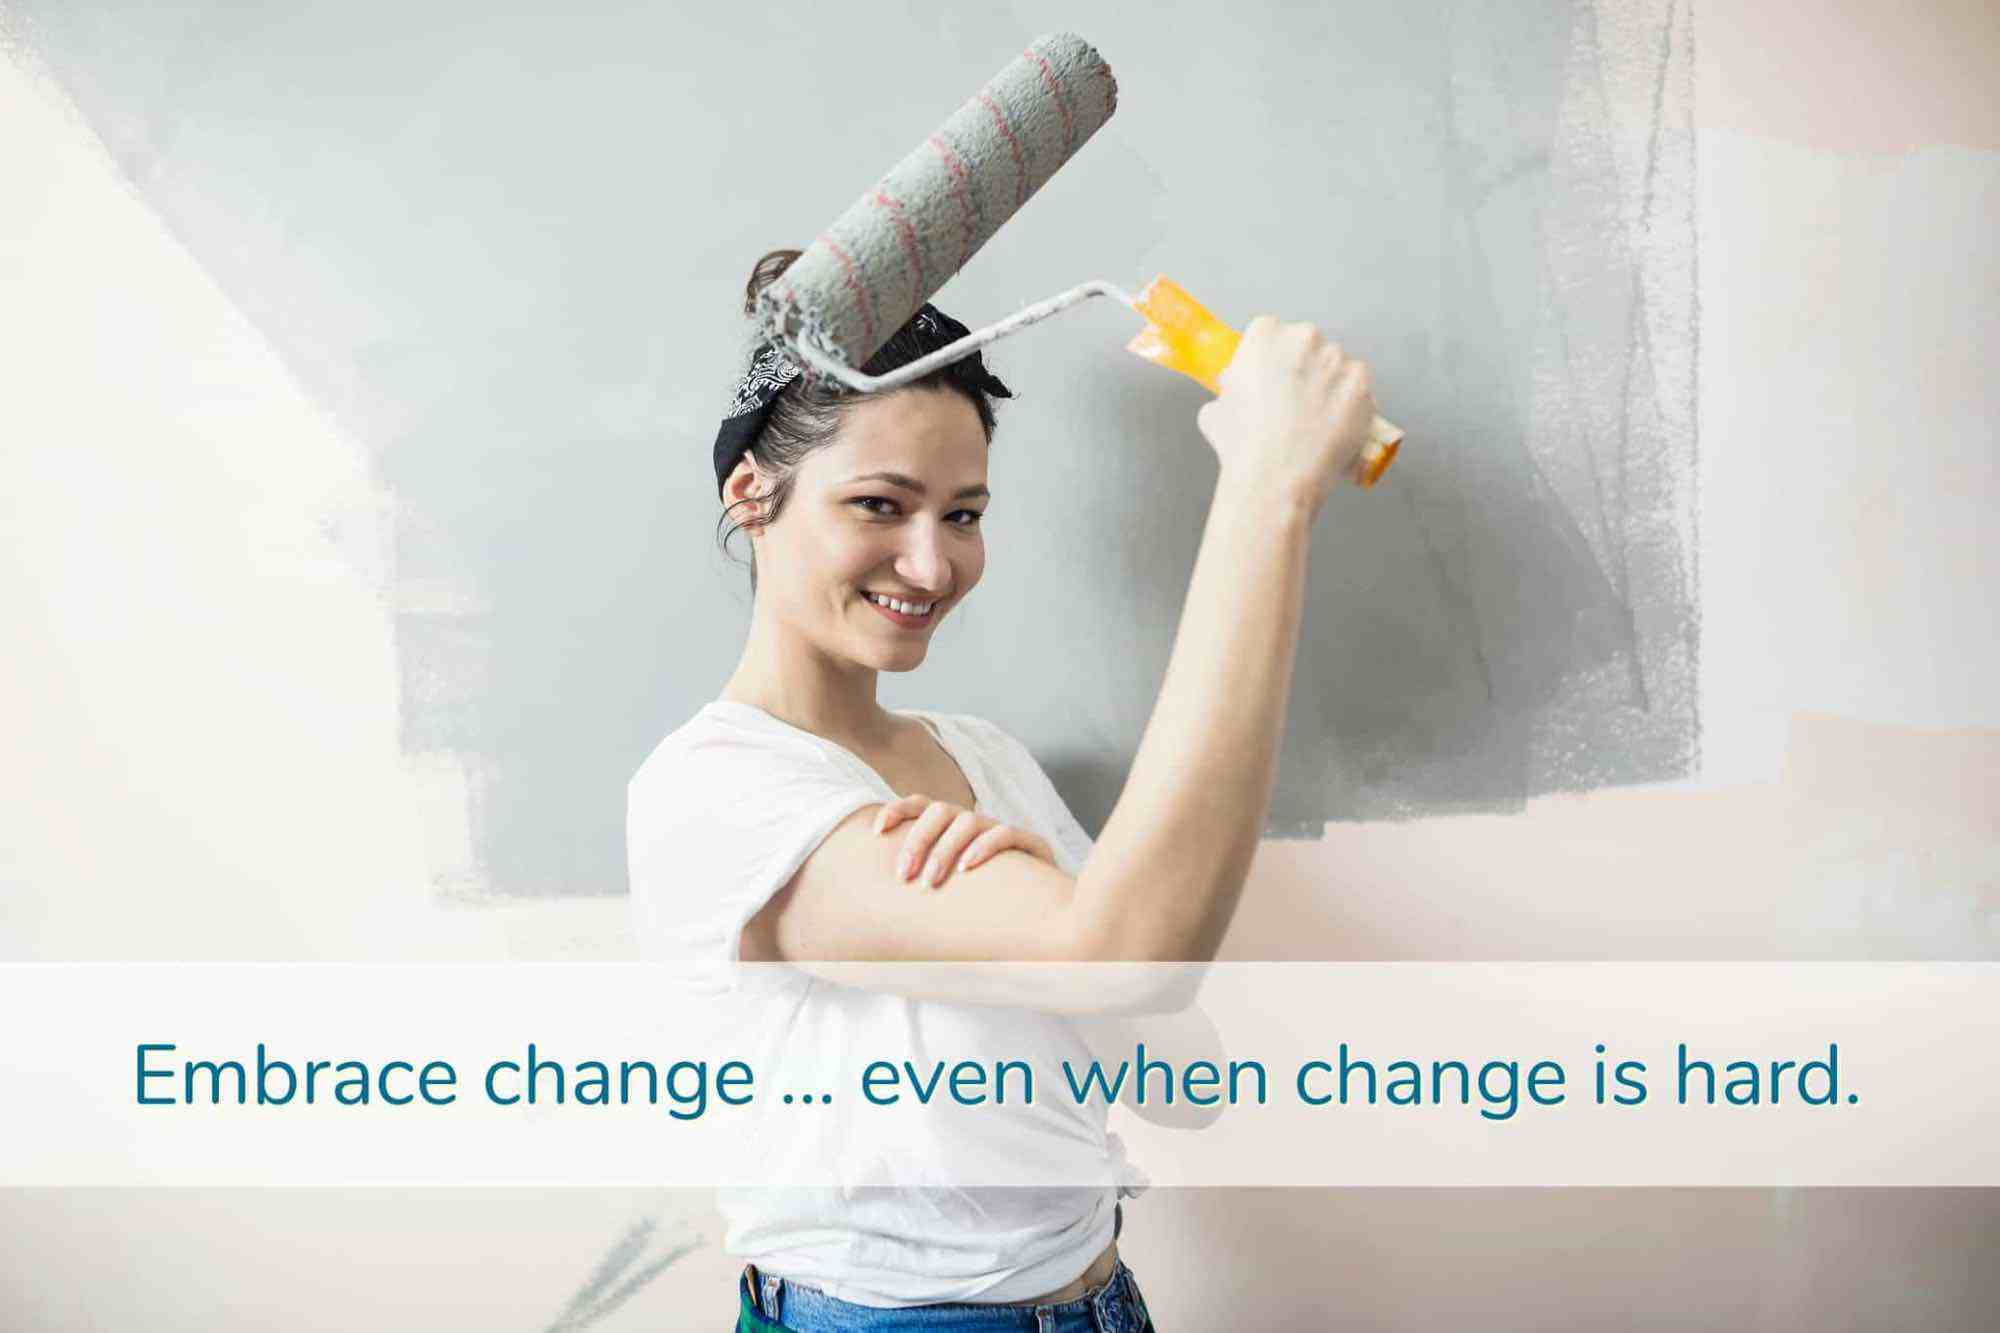 Strong, smiling woman holding up paint roller while flexing bicep